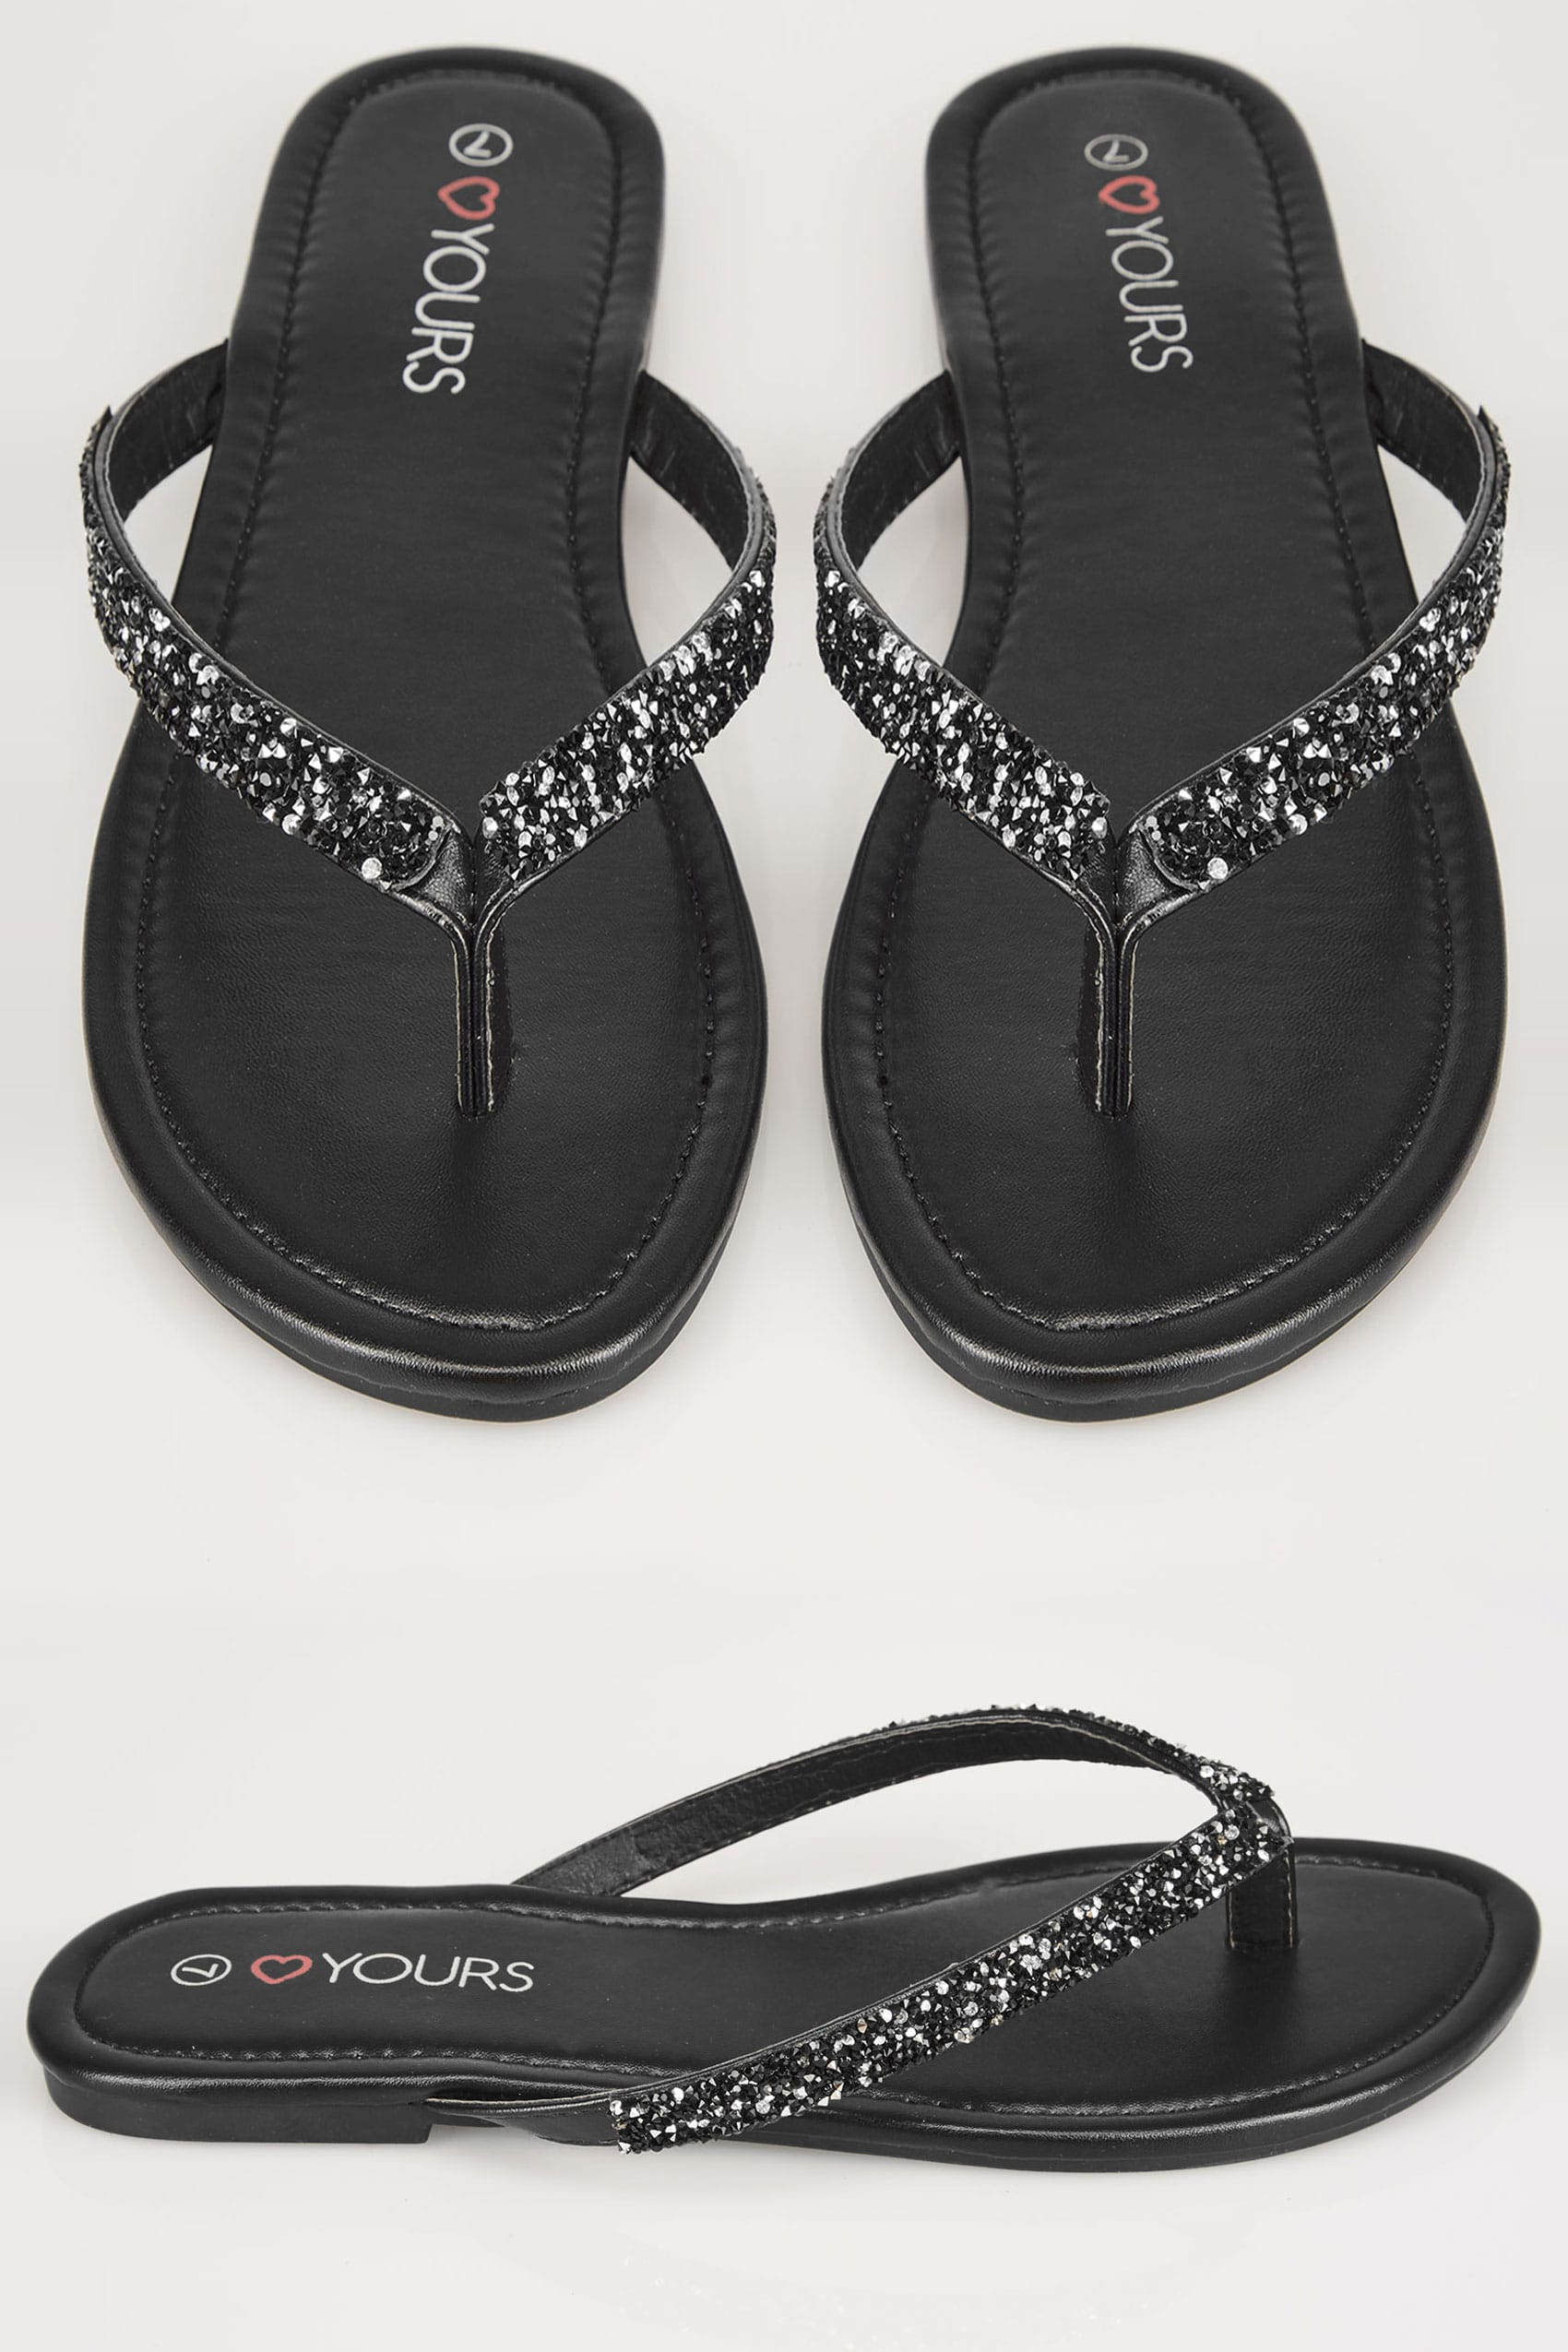 Black Sandals With Glitter Straps In Eee Fit-8821